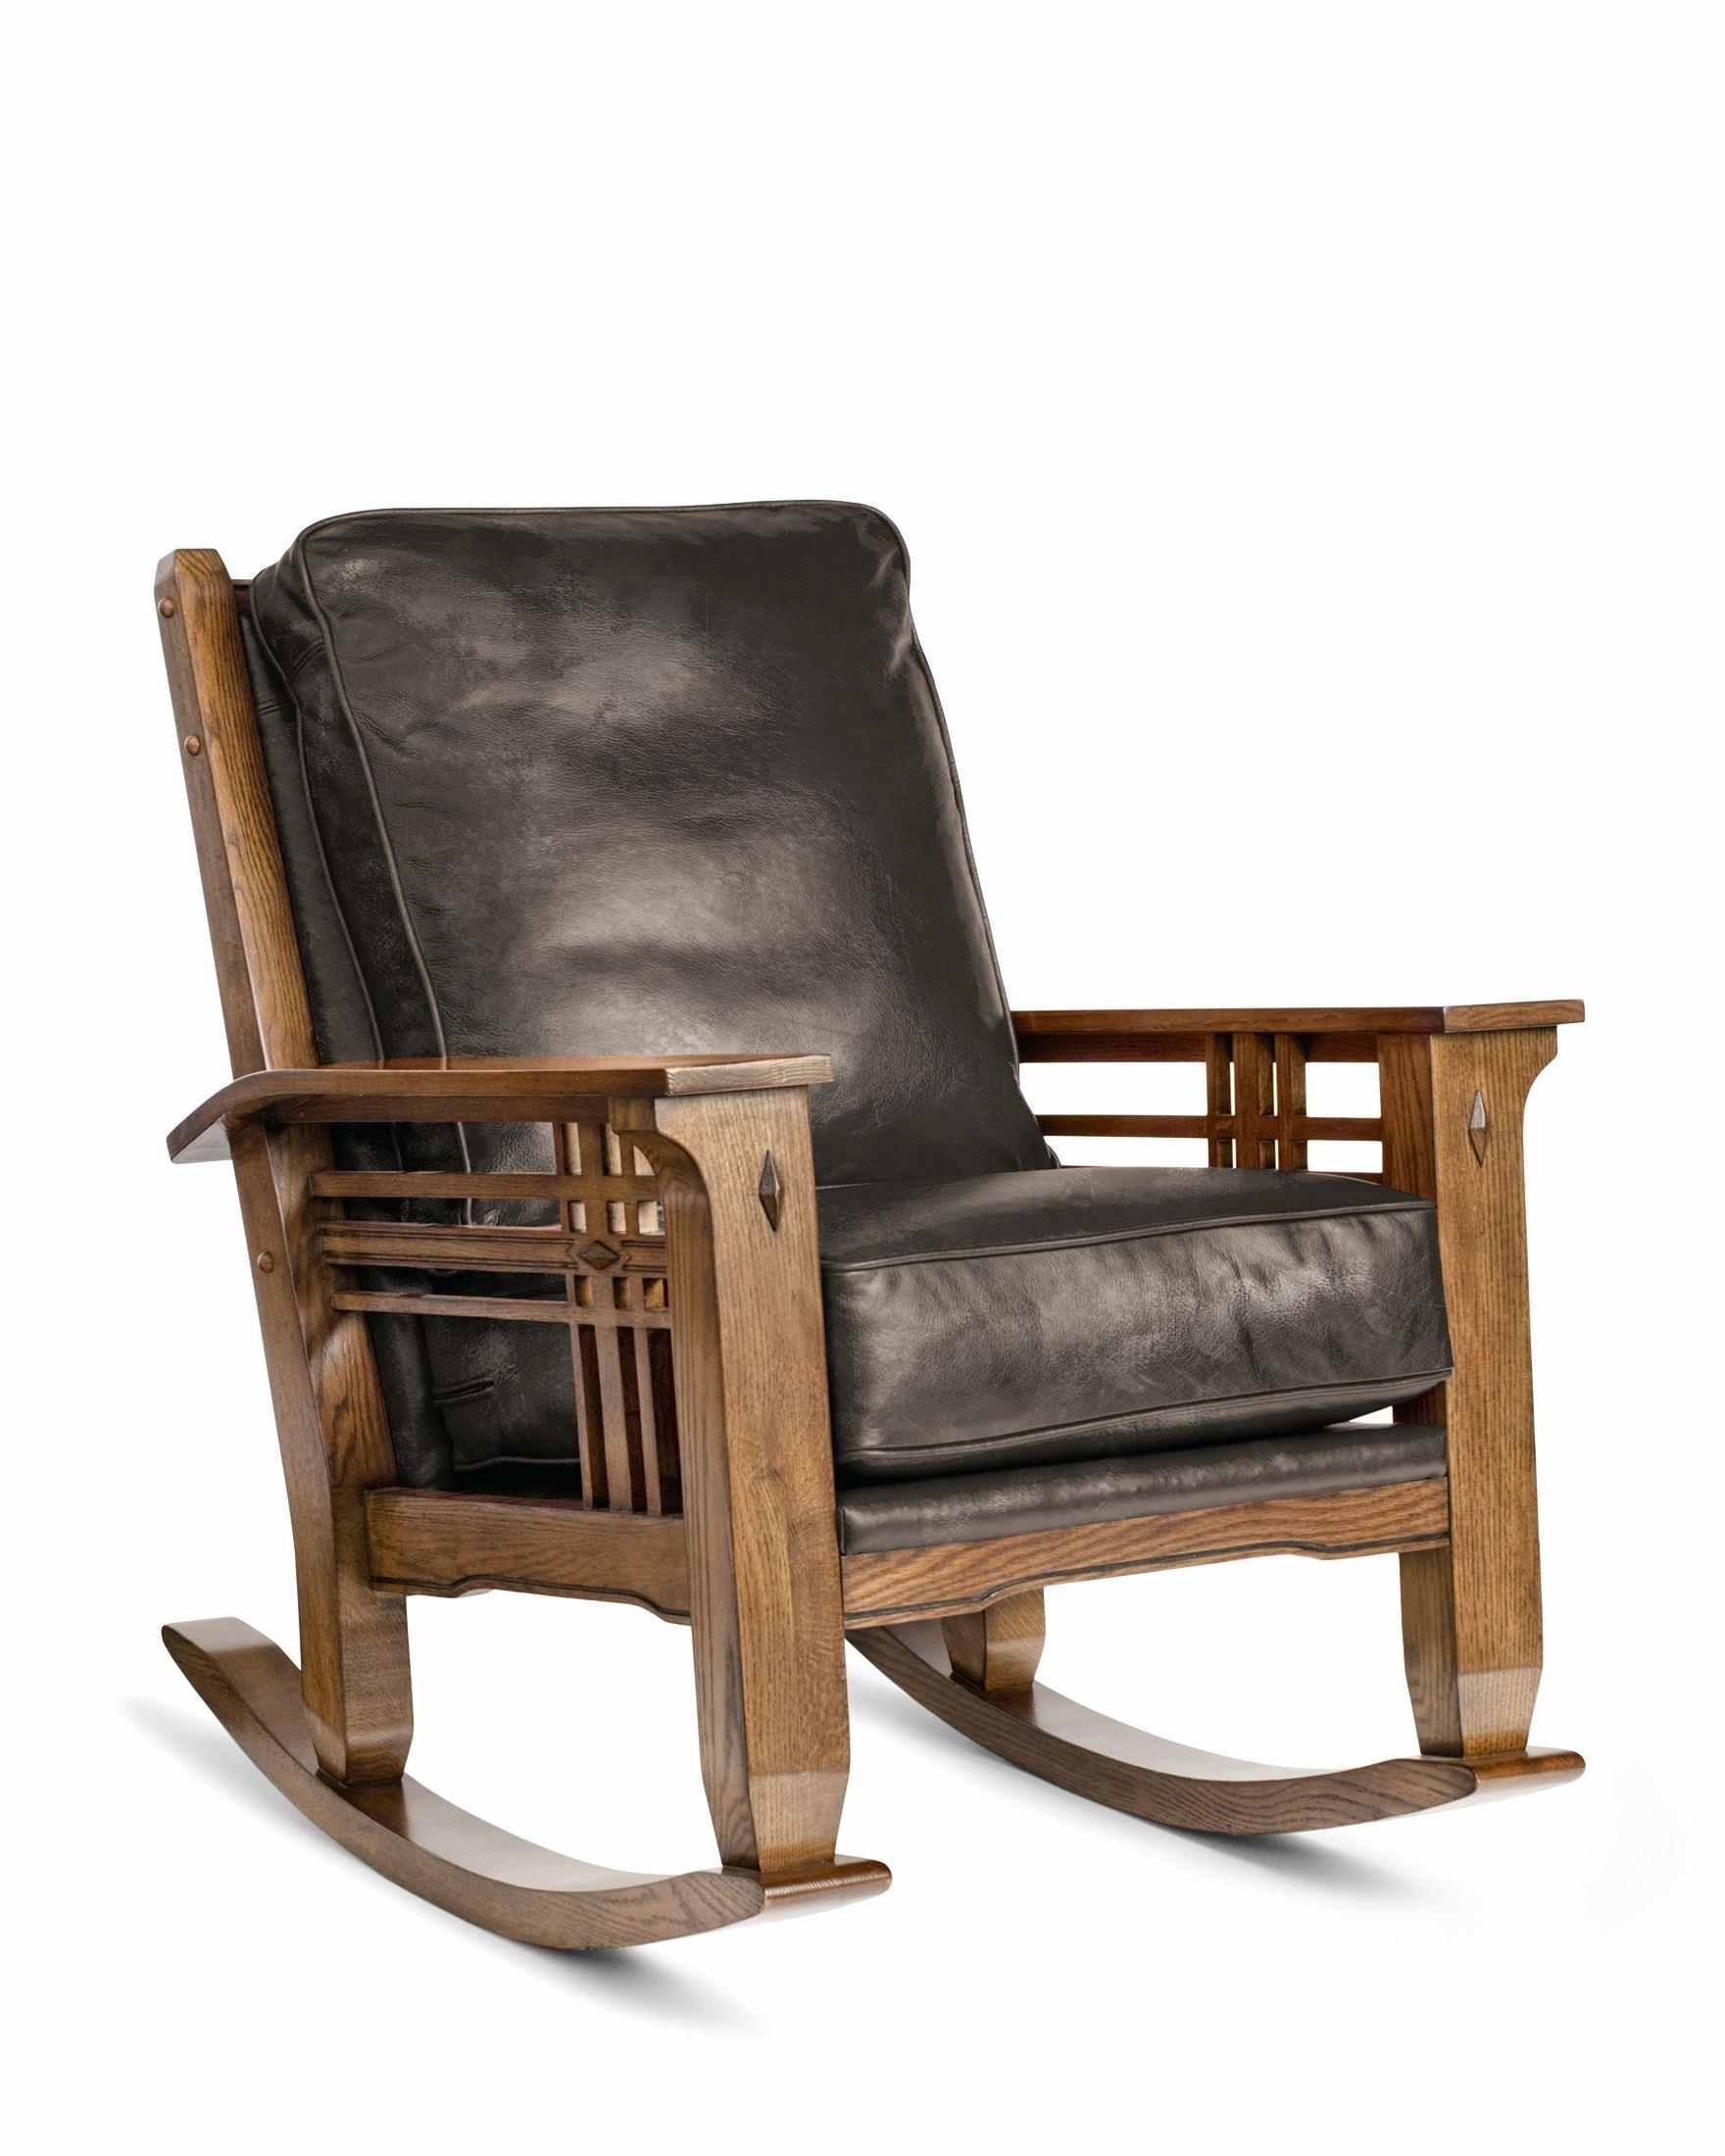 Leather Rocking Chair – Happyshaman In Faux Leather Upholstered Wooden Rocking Chairs With Looped Arms, Brown (View 8 of 20)